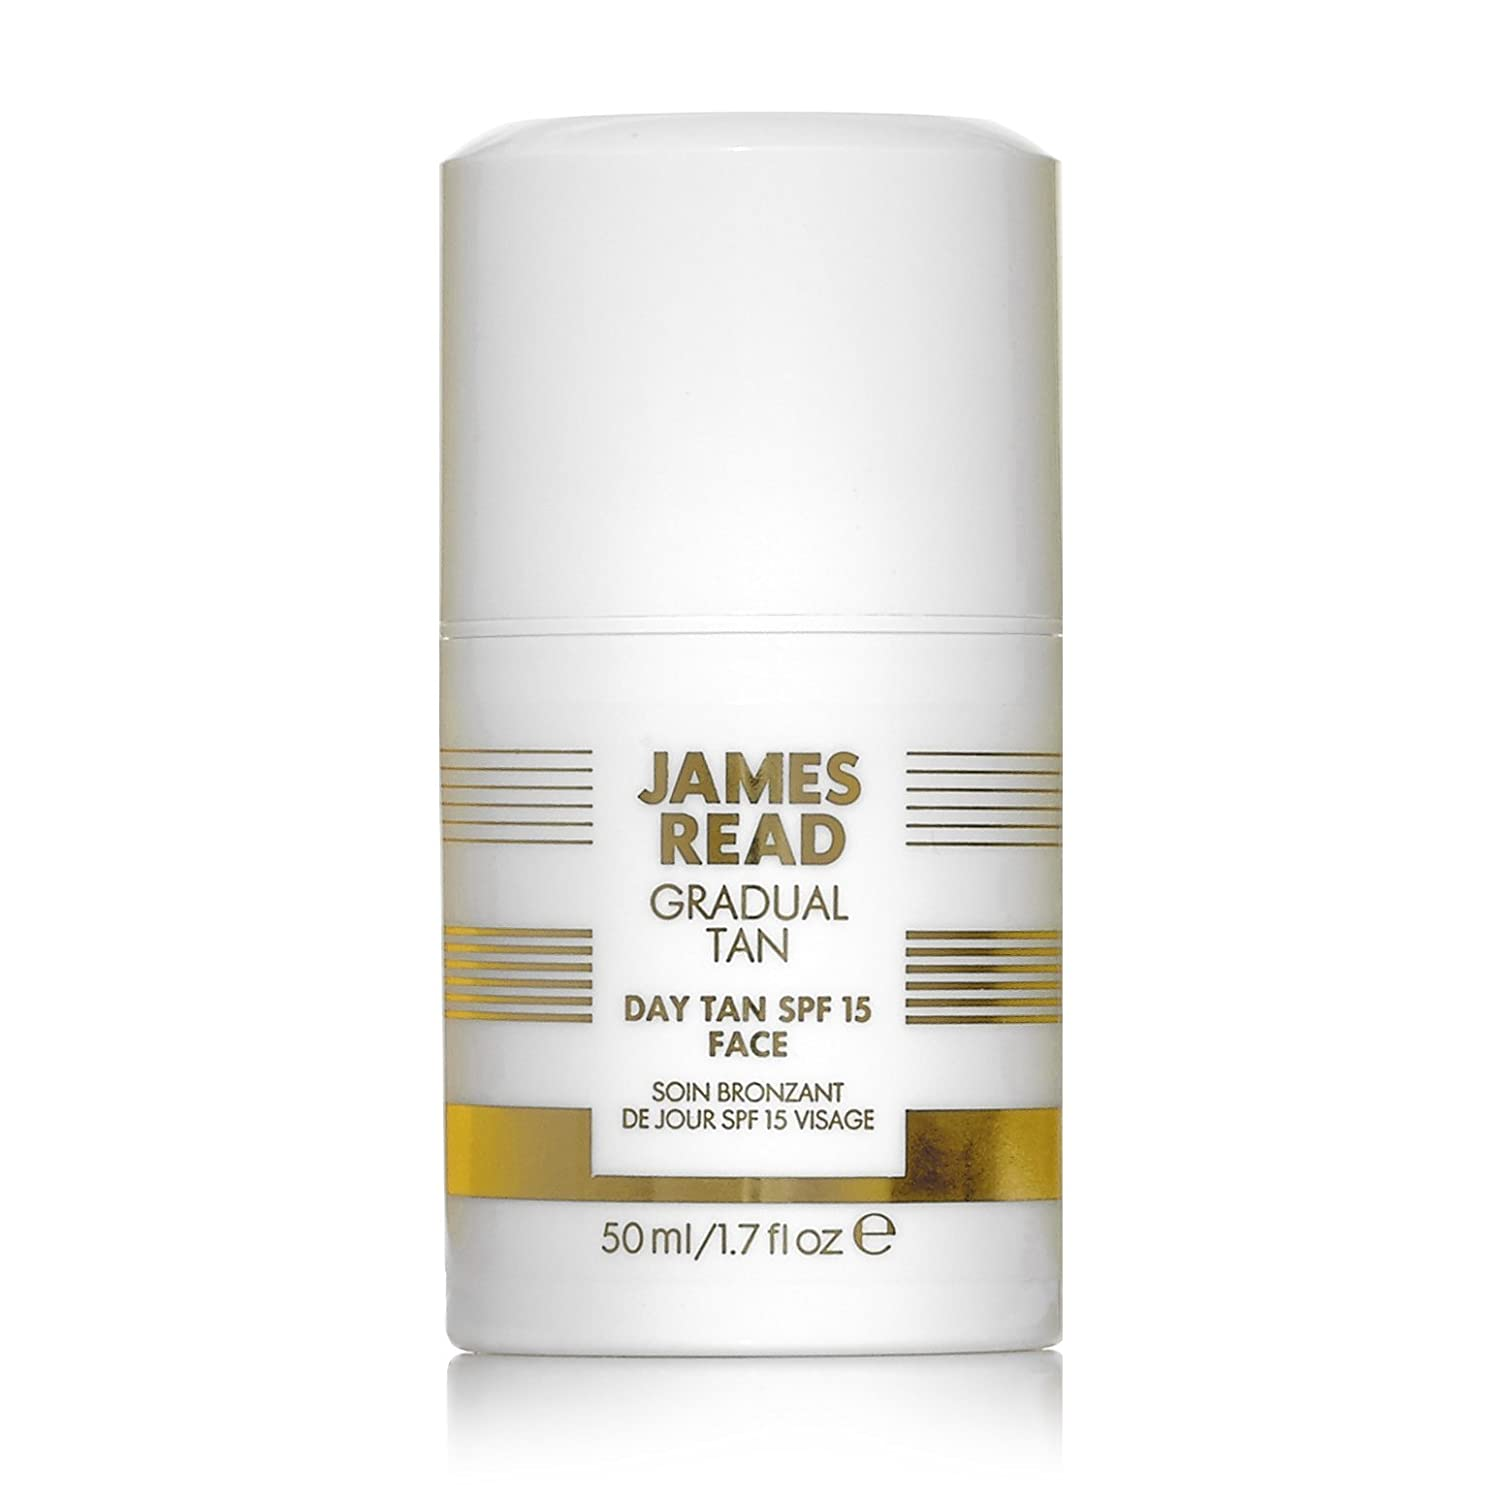 James Read Day Tan Face Spf 15 50 Ml Luxury Beauty Cream Foundation Baby Glow Sunblock Cosmo